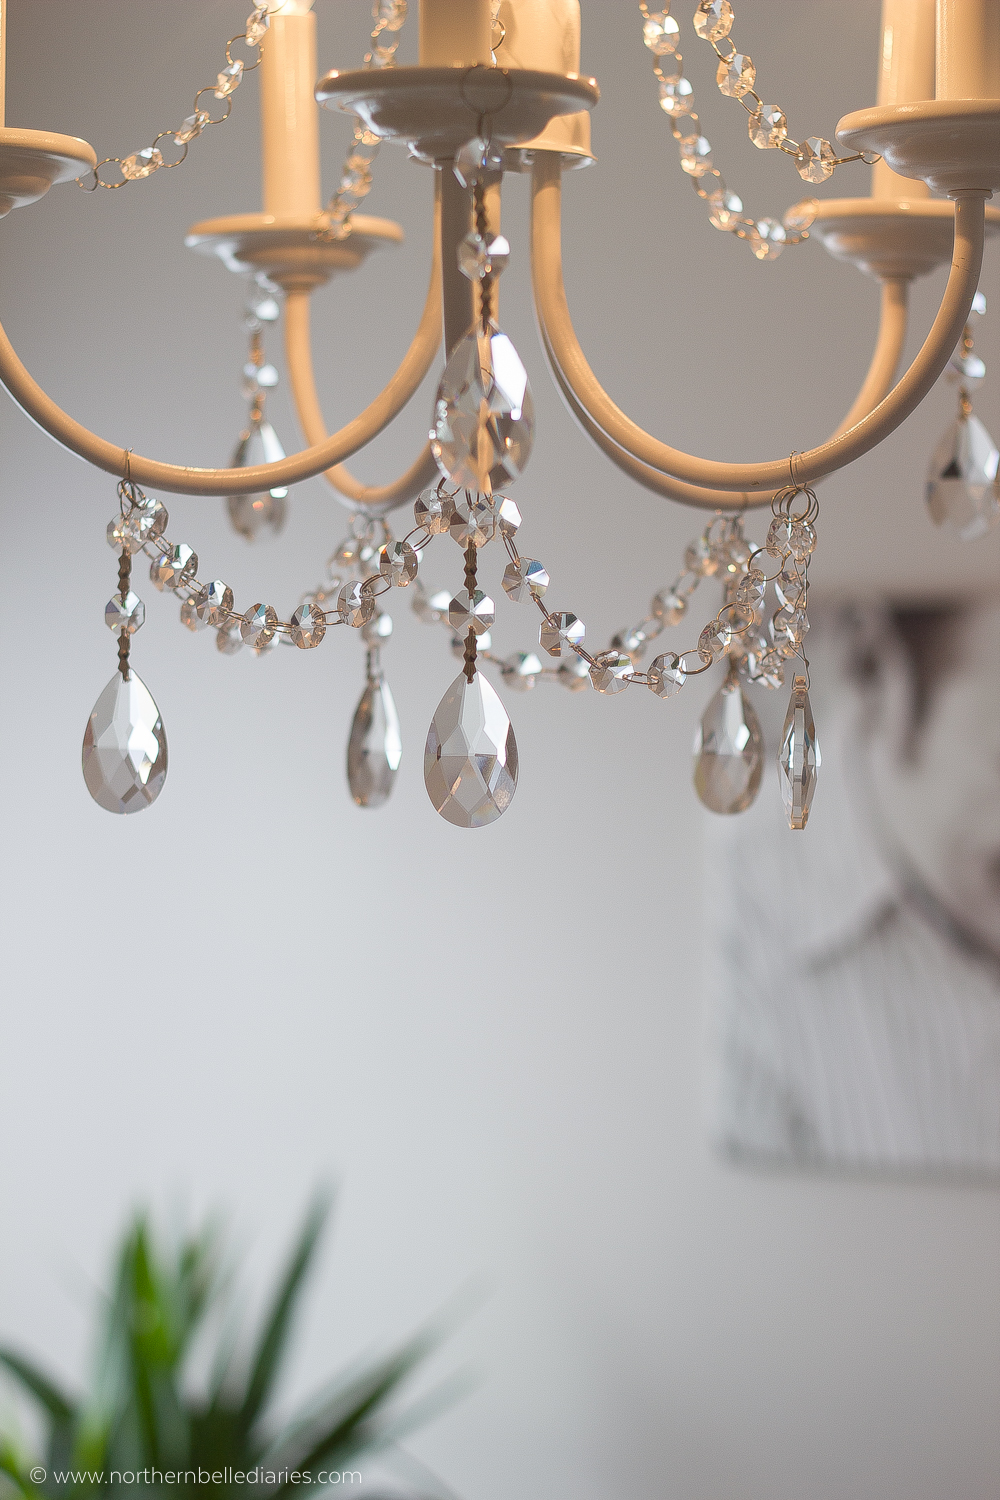 Dining Room Mesmerizing Chandelier Crystals For Home